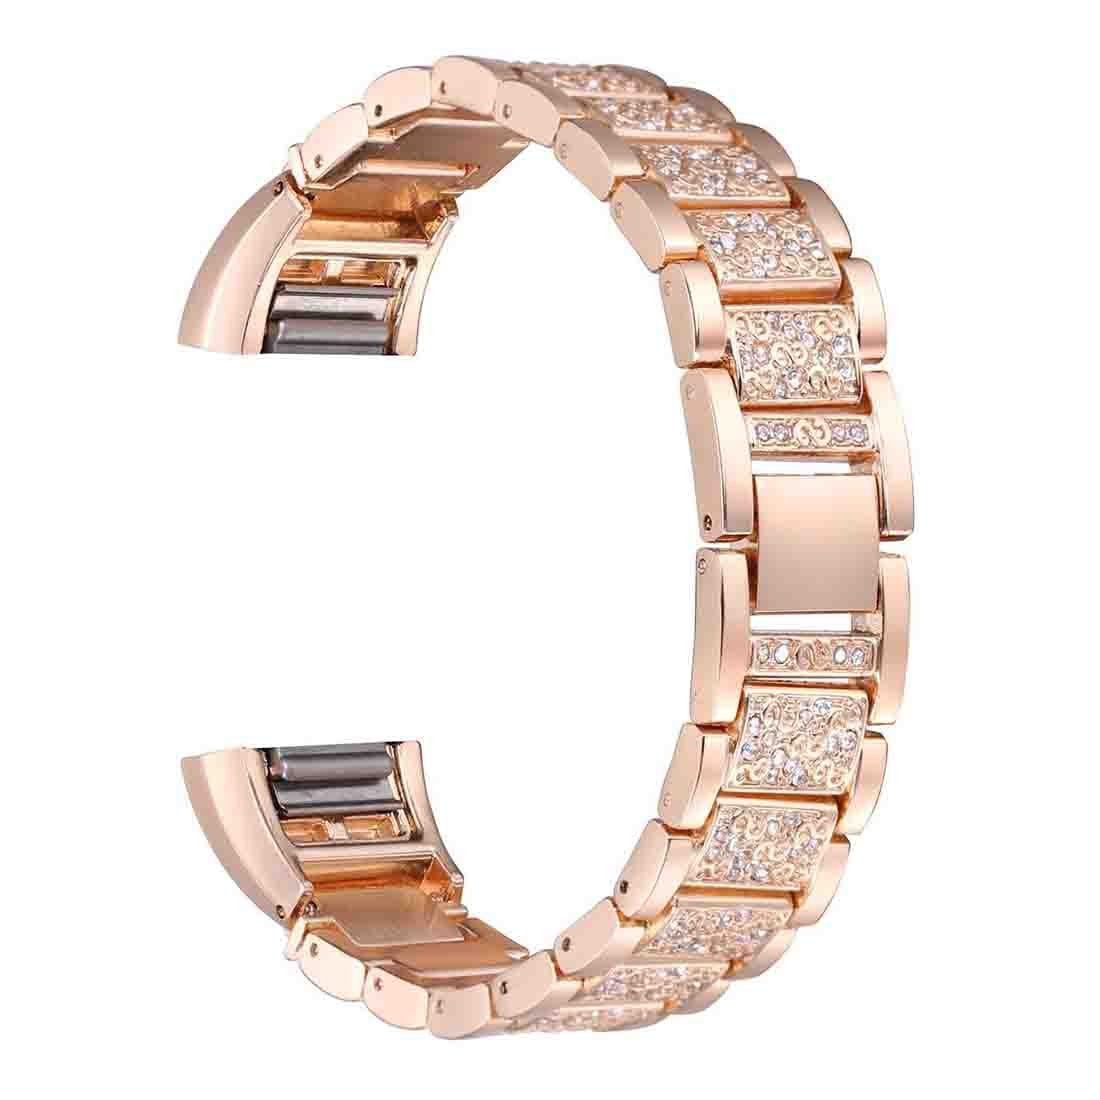 Watch Band for Fitbit Charge 2,Crystal Stainless Steel Watch Bands Wrist Strap Bracelet Replacement (Rose Gold Color Plated)